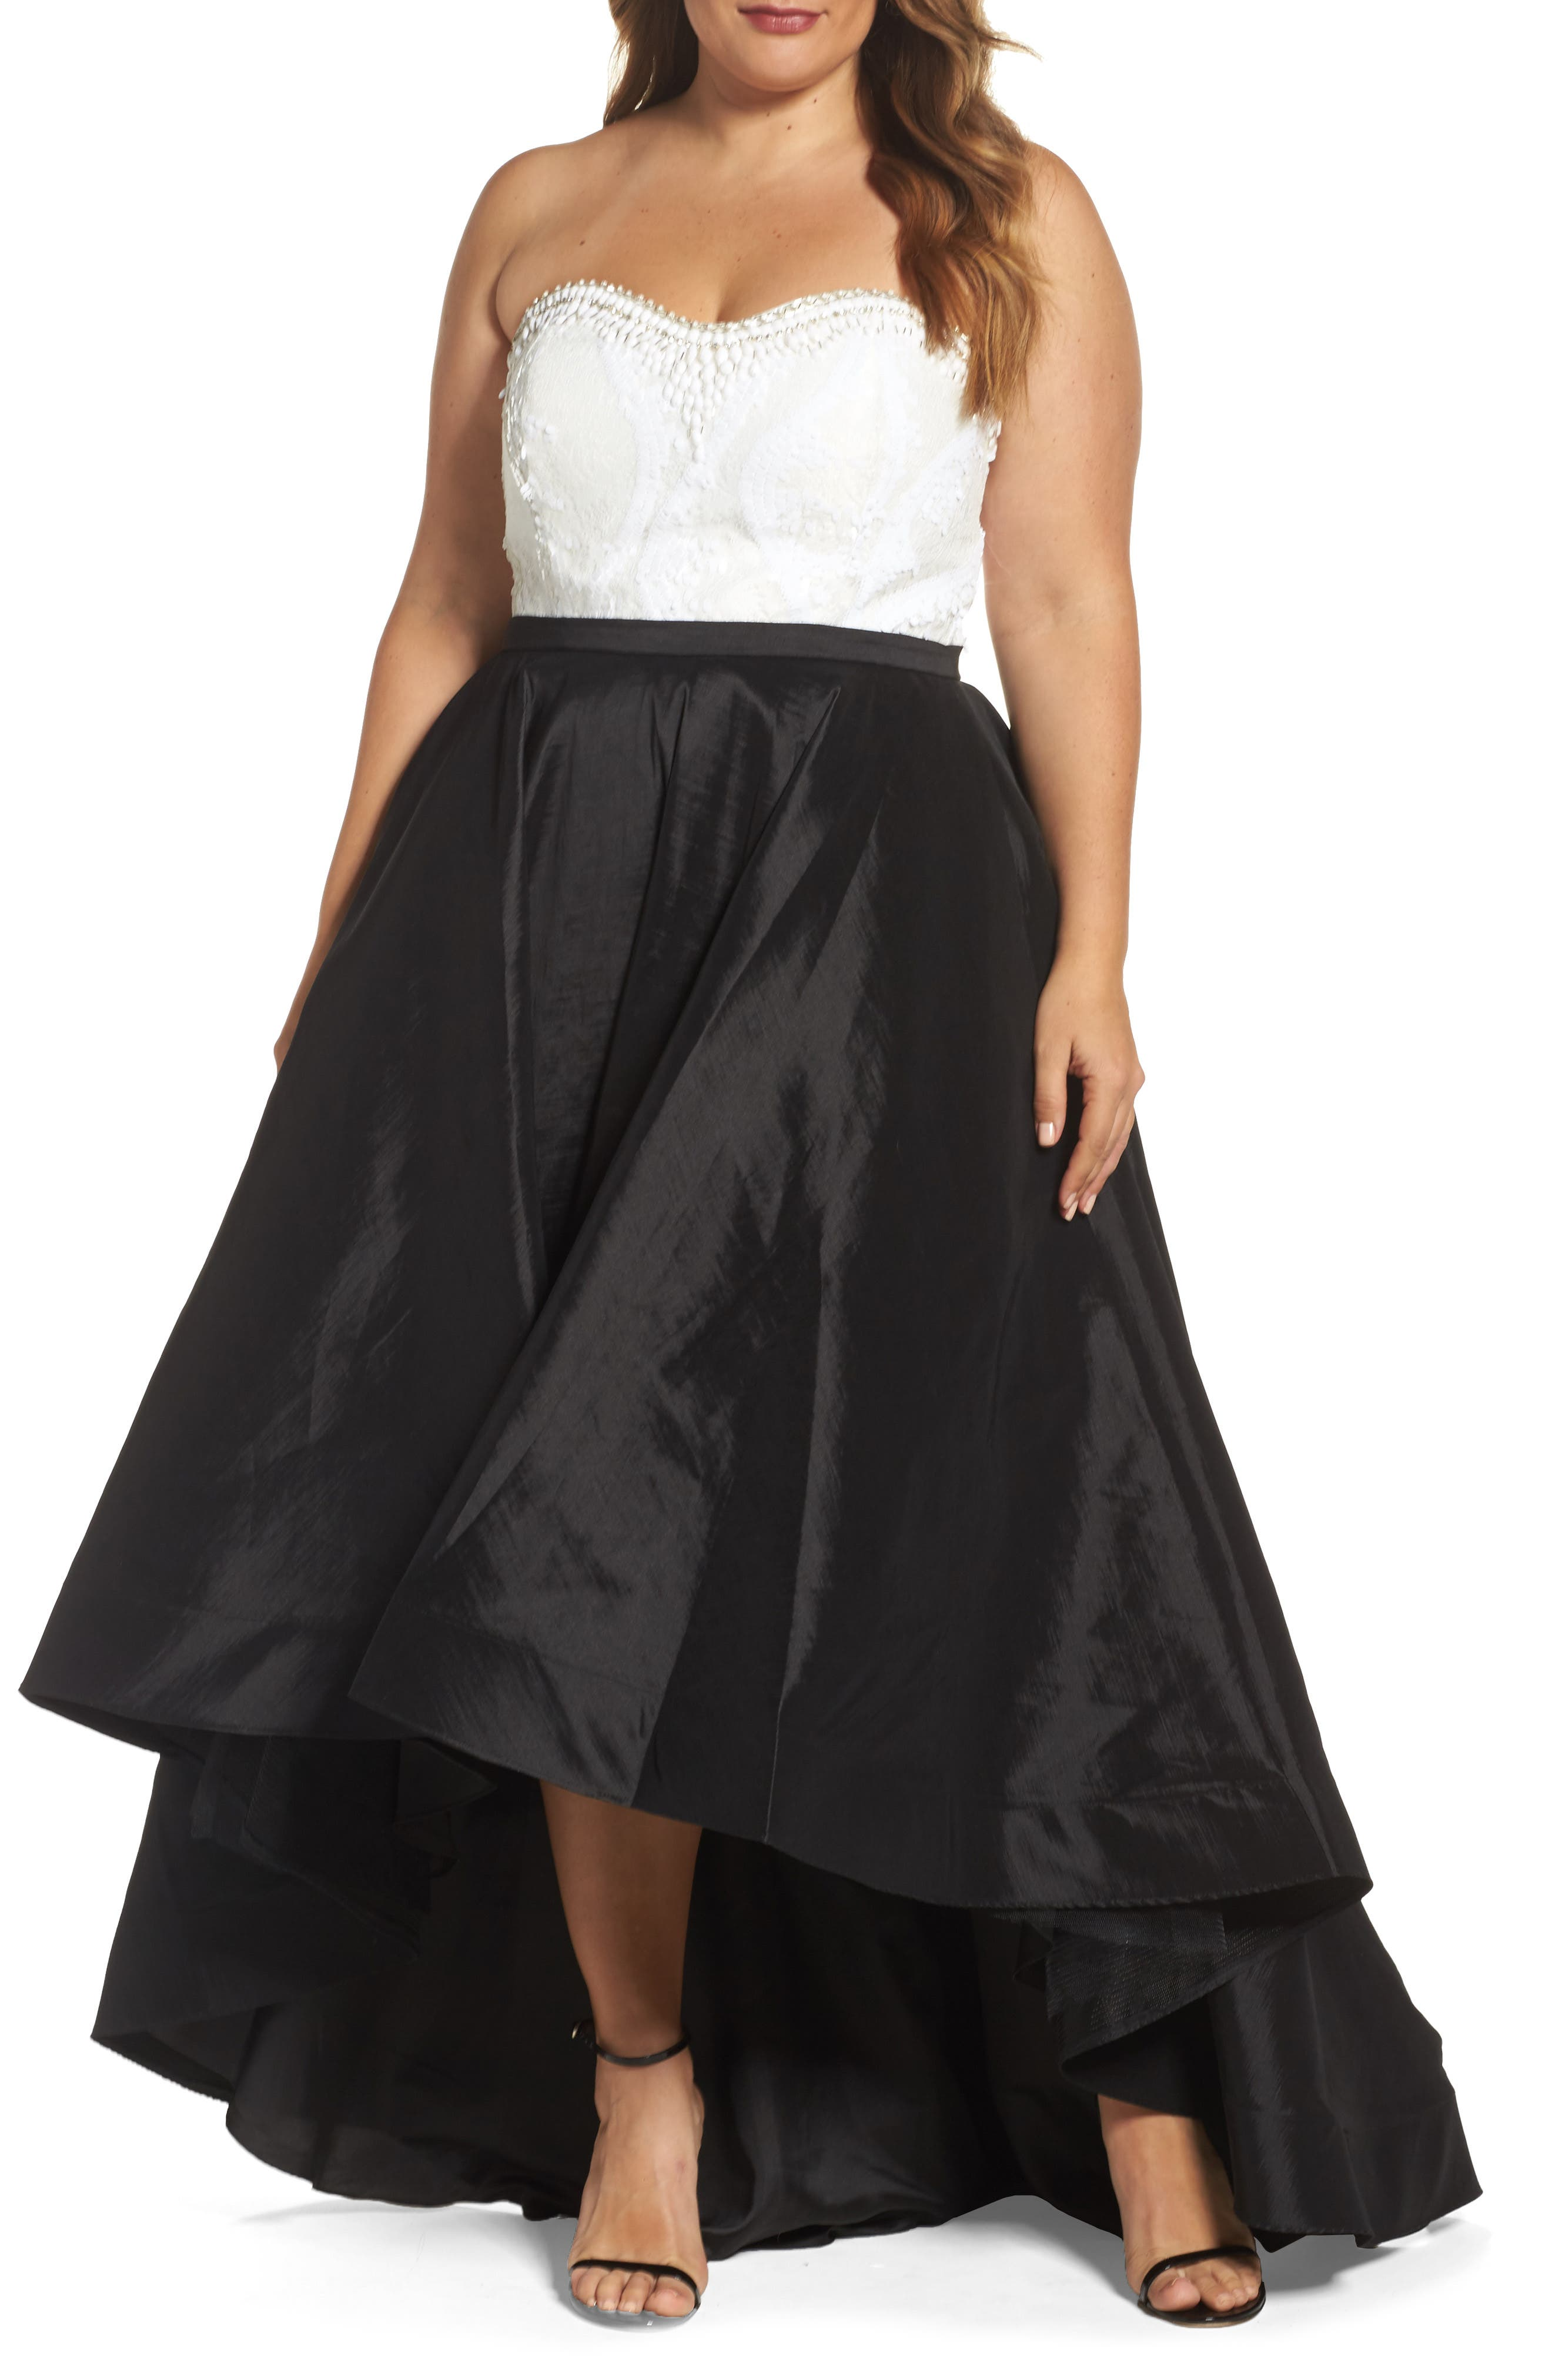 Main Image - Mac Duggal Embellished Lace & Taffeta Strapless High/Low Gown (Plus Size)